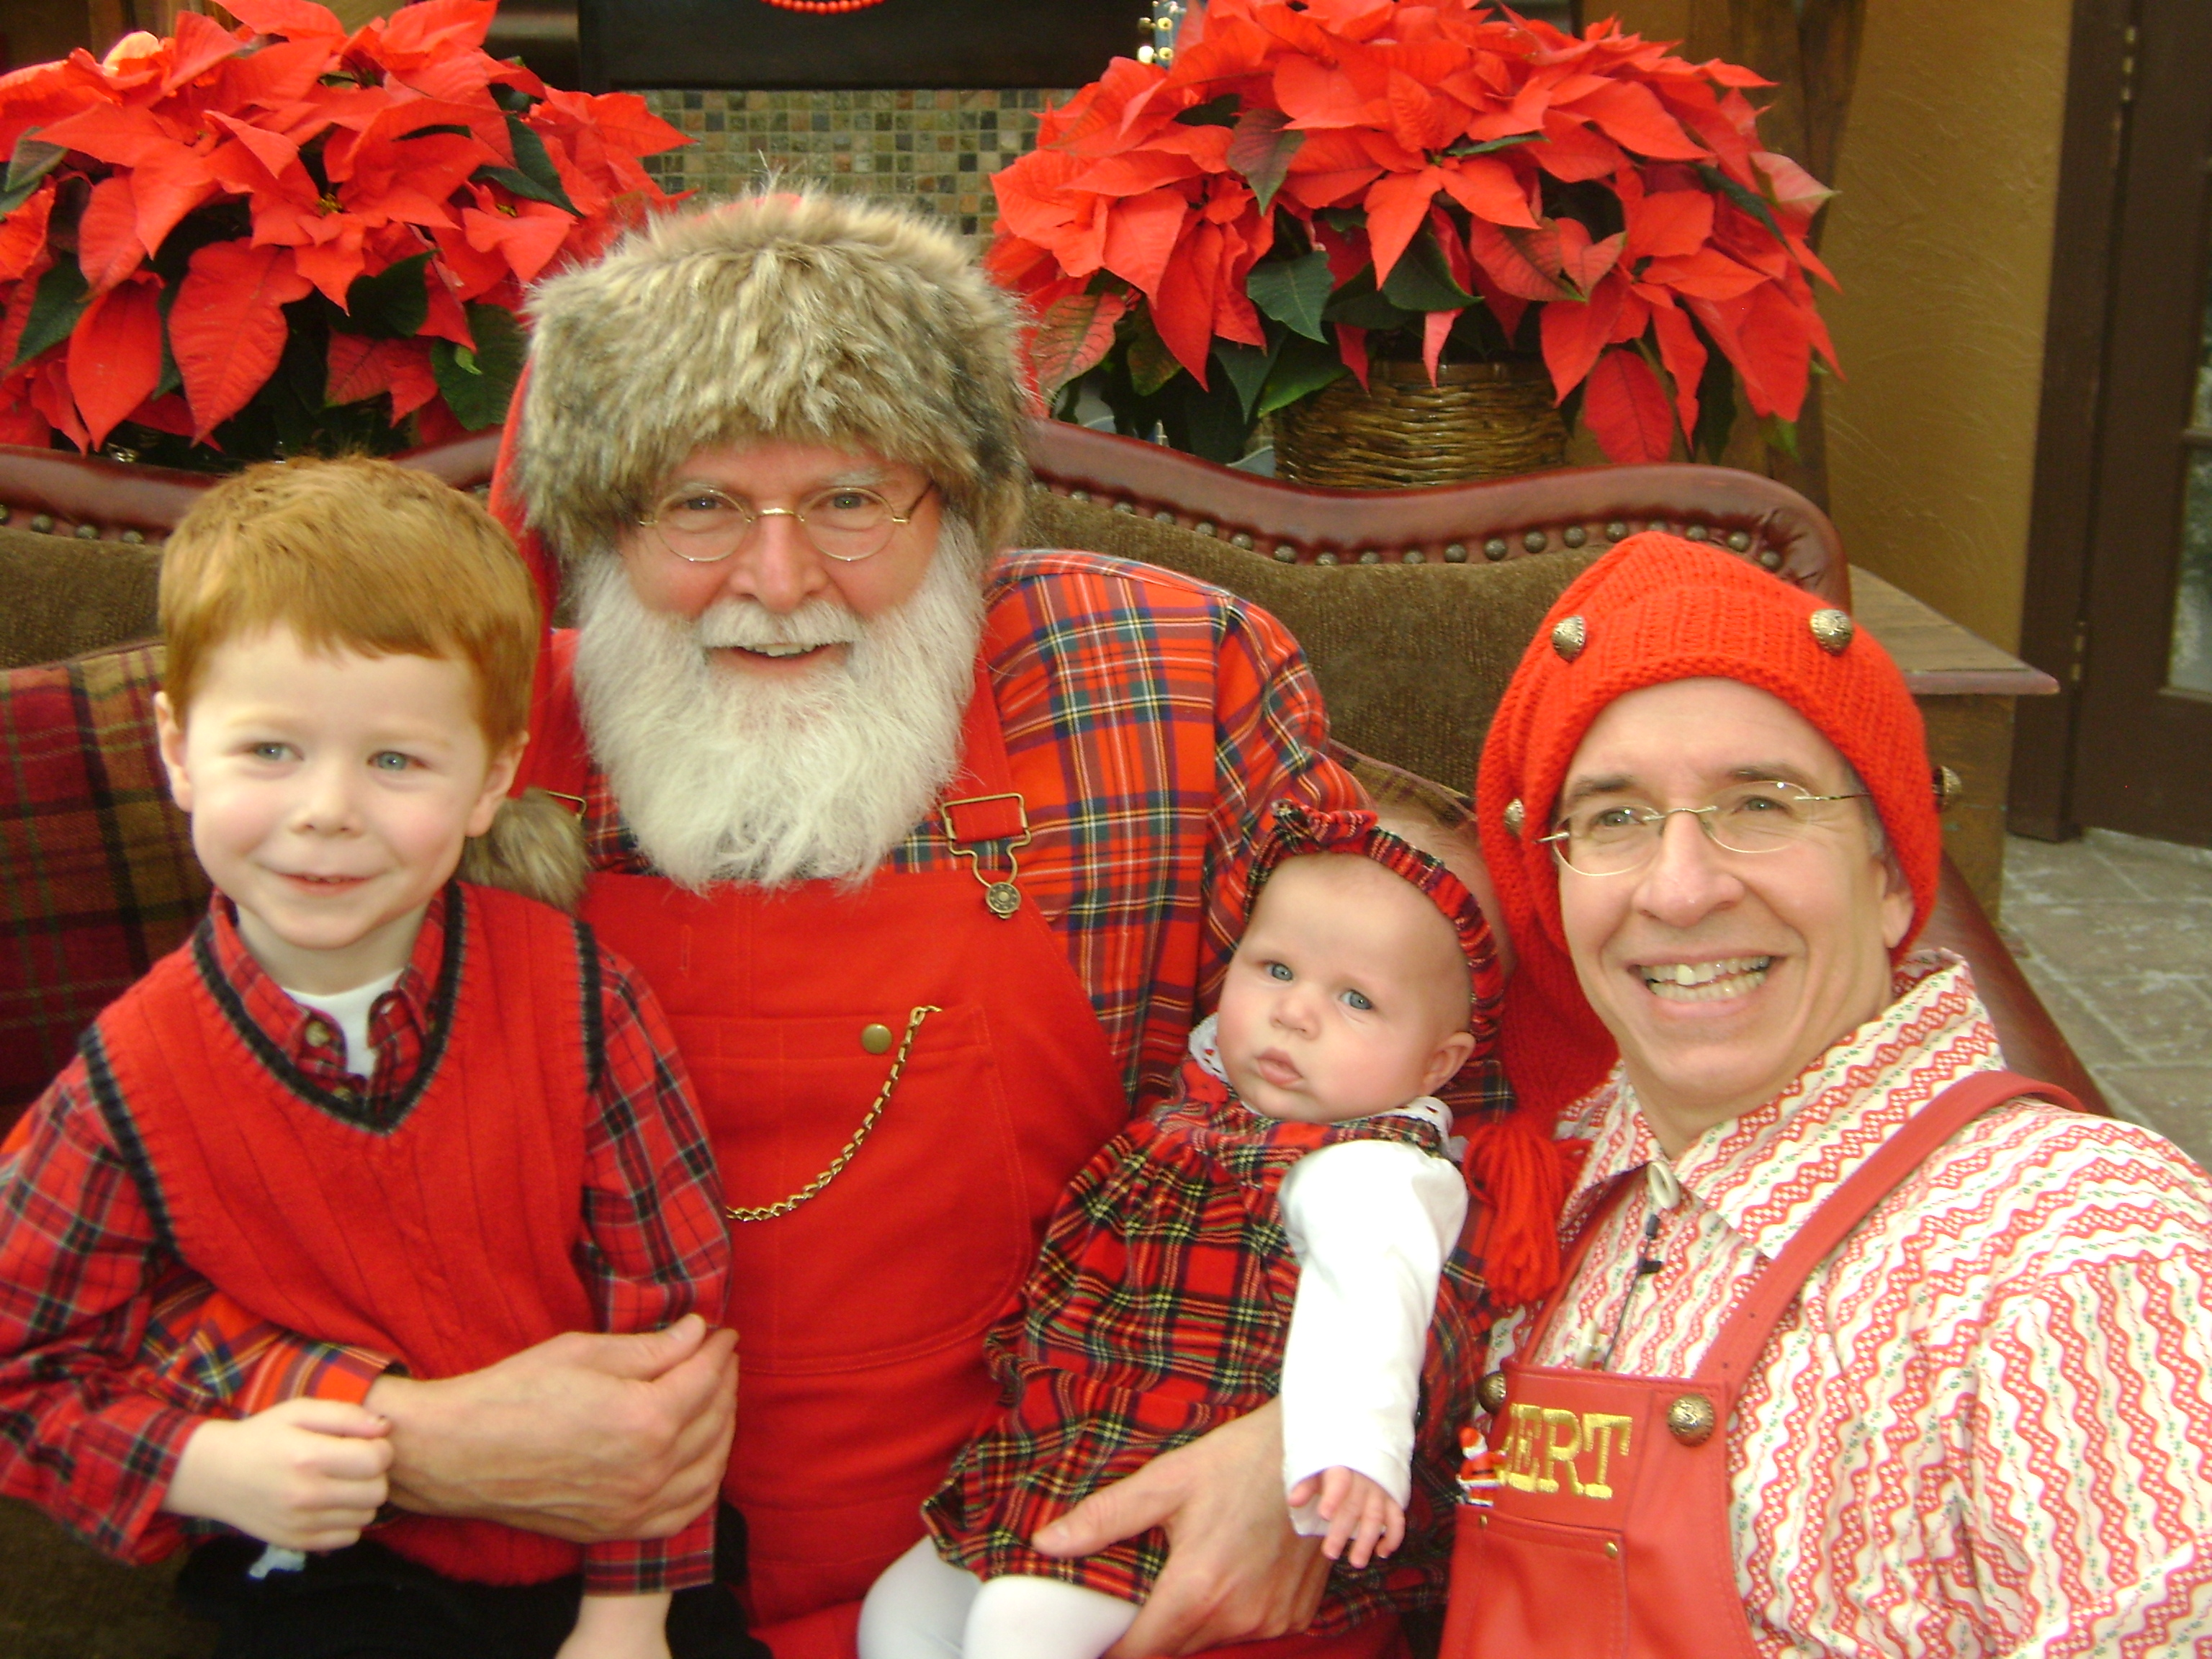 Santa, Albert, and the Mimick children